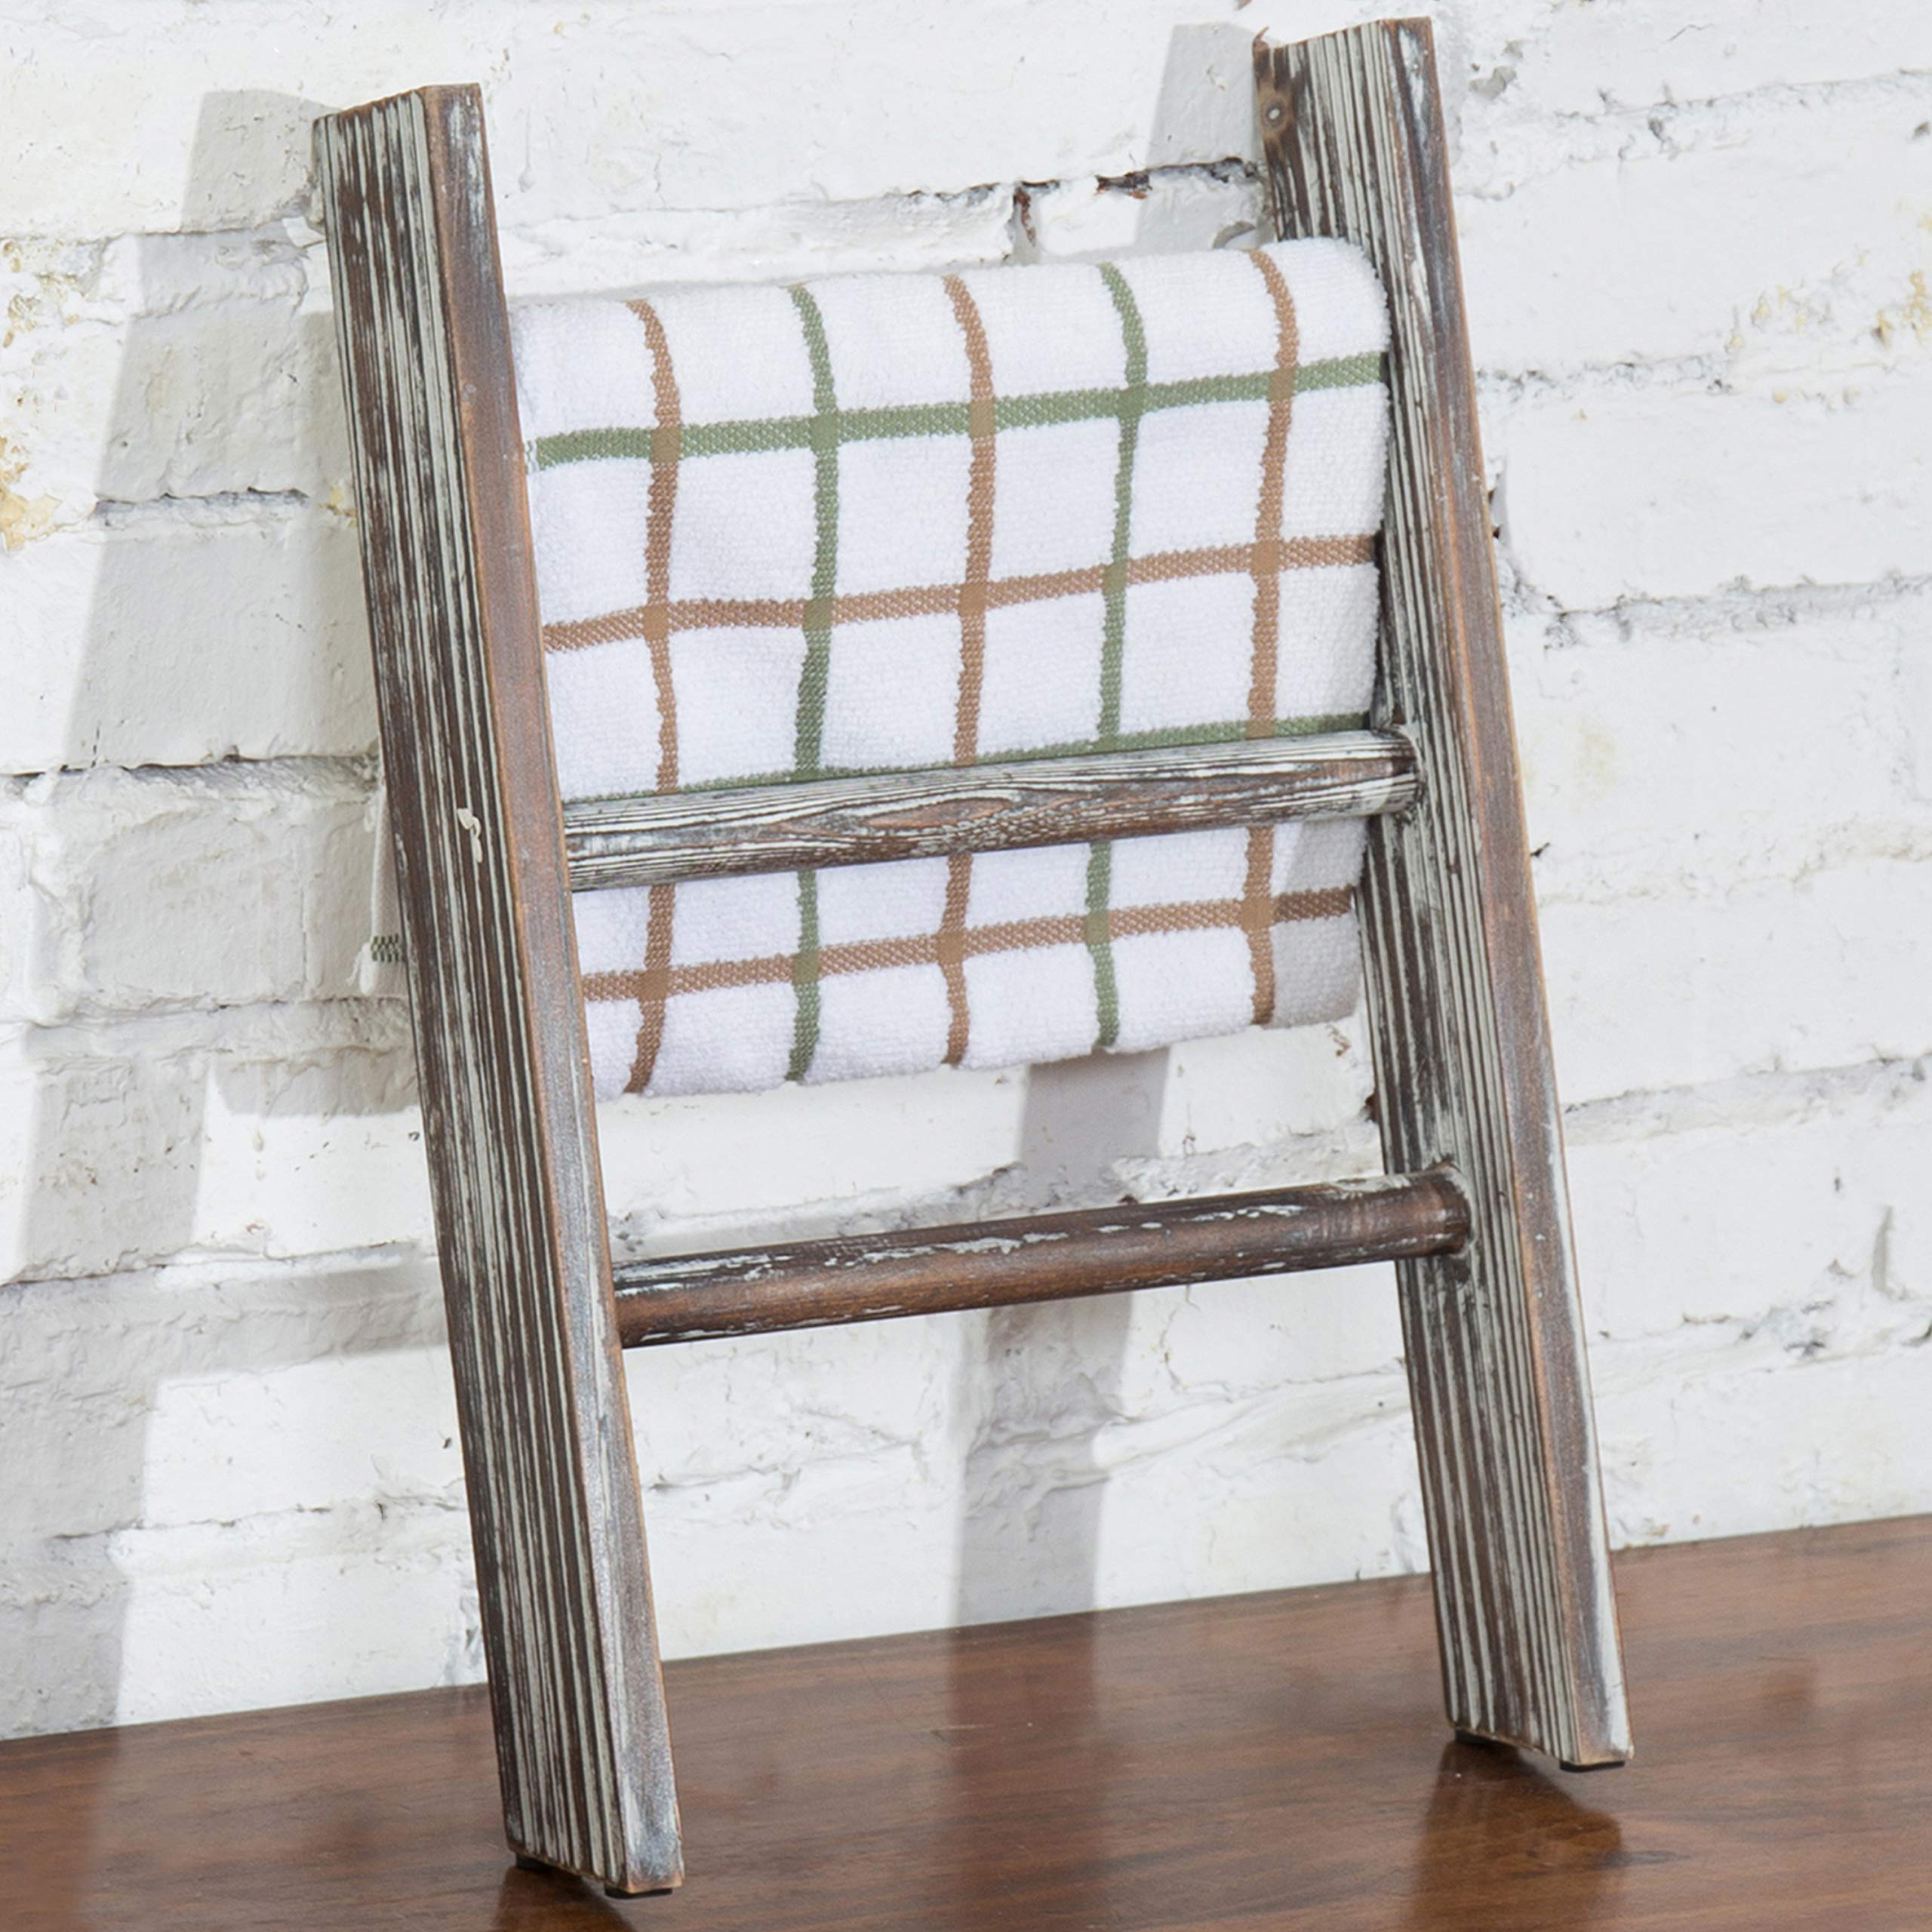 MyGift Rustic Torched Wood Countertop 16-Inch Ladder Kitchen Towel Rack by MyGift